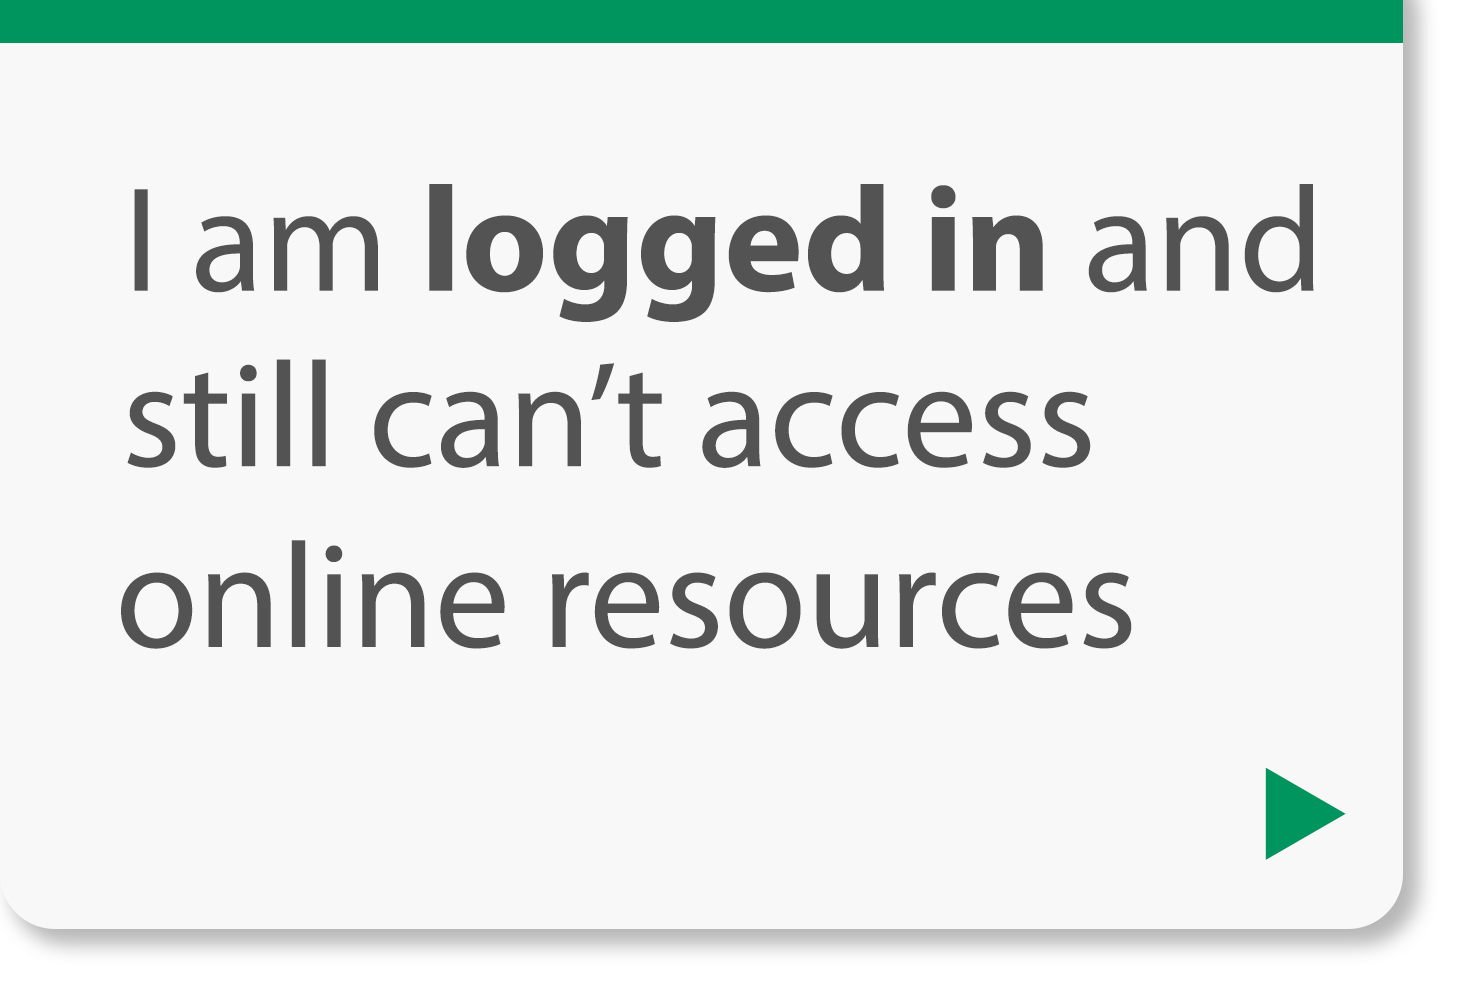 I am logged in and still can't access online resources